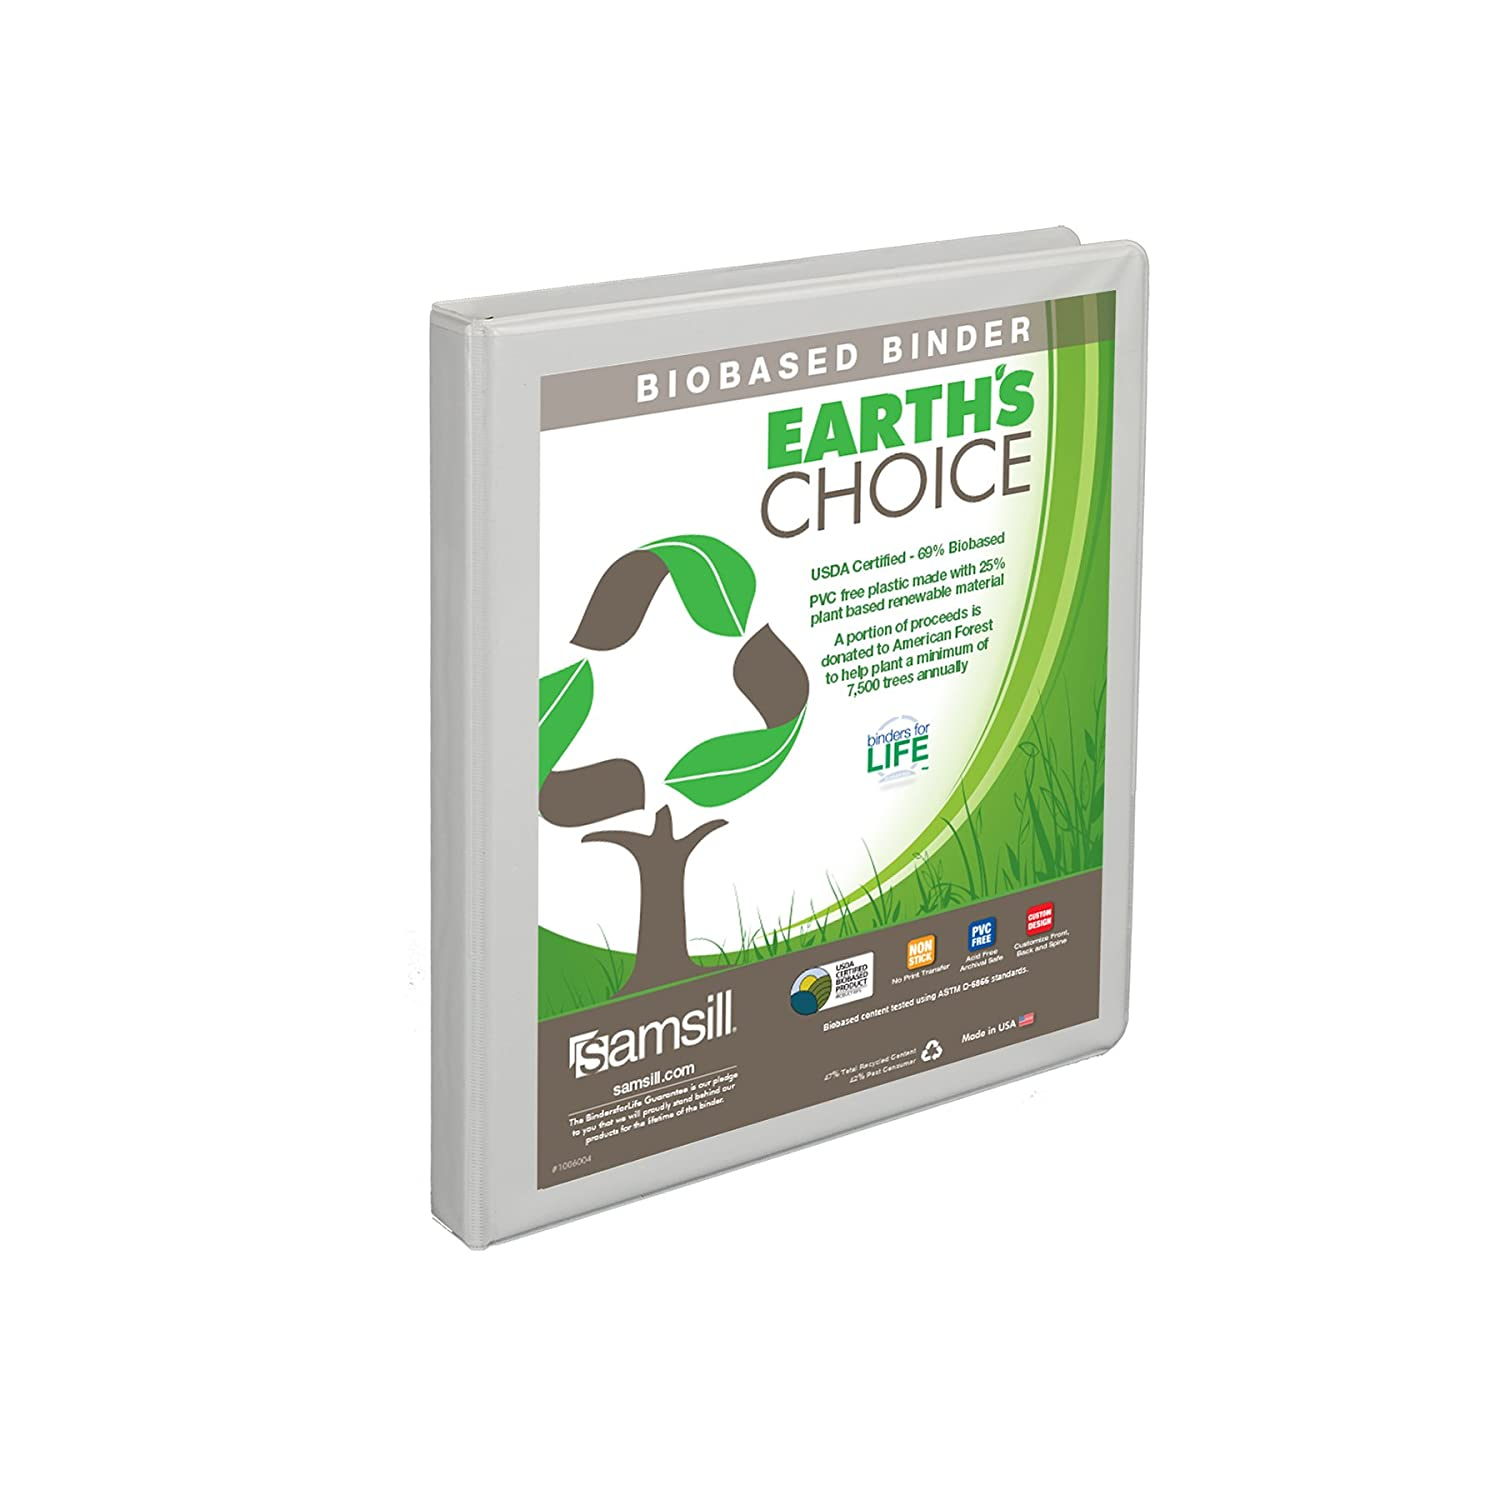 Samsill Earth's Choice Biobased View Binder, 3 Ring Binder, 1.5 Inch, Round Ring, Customizable, White, 4 Pack Samsill Corporation I08957